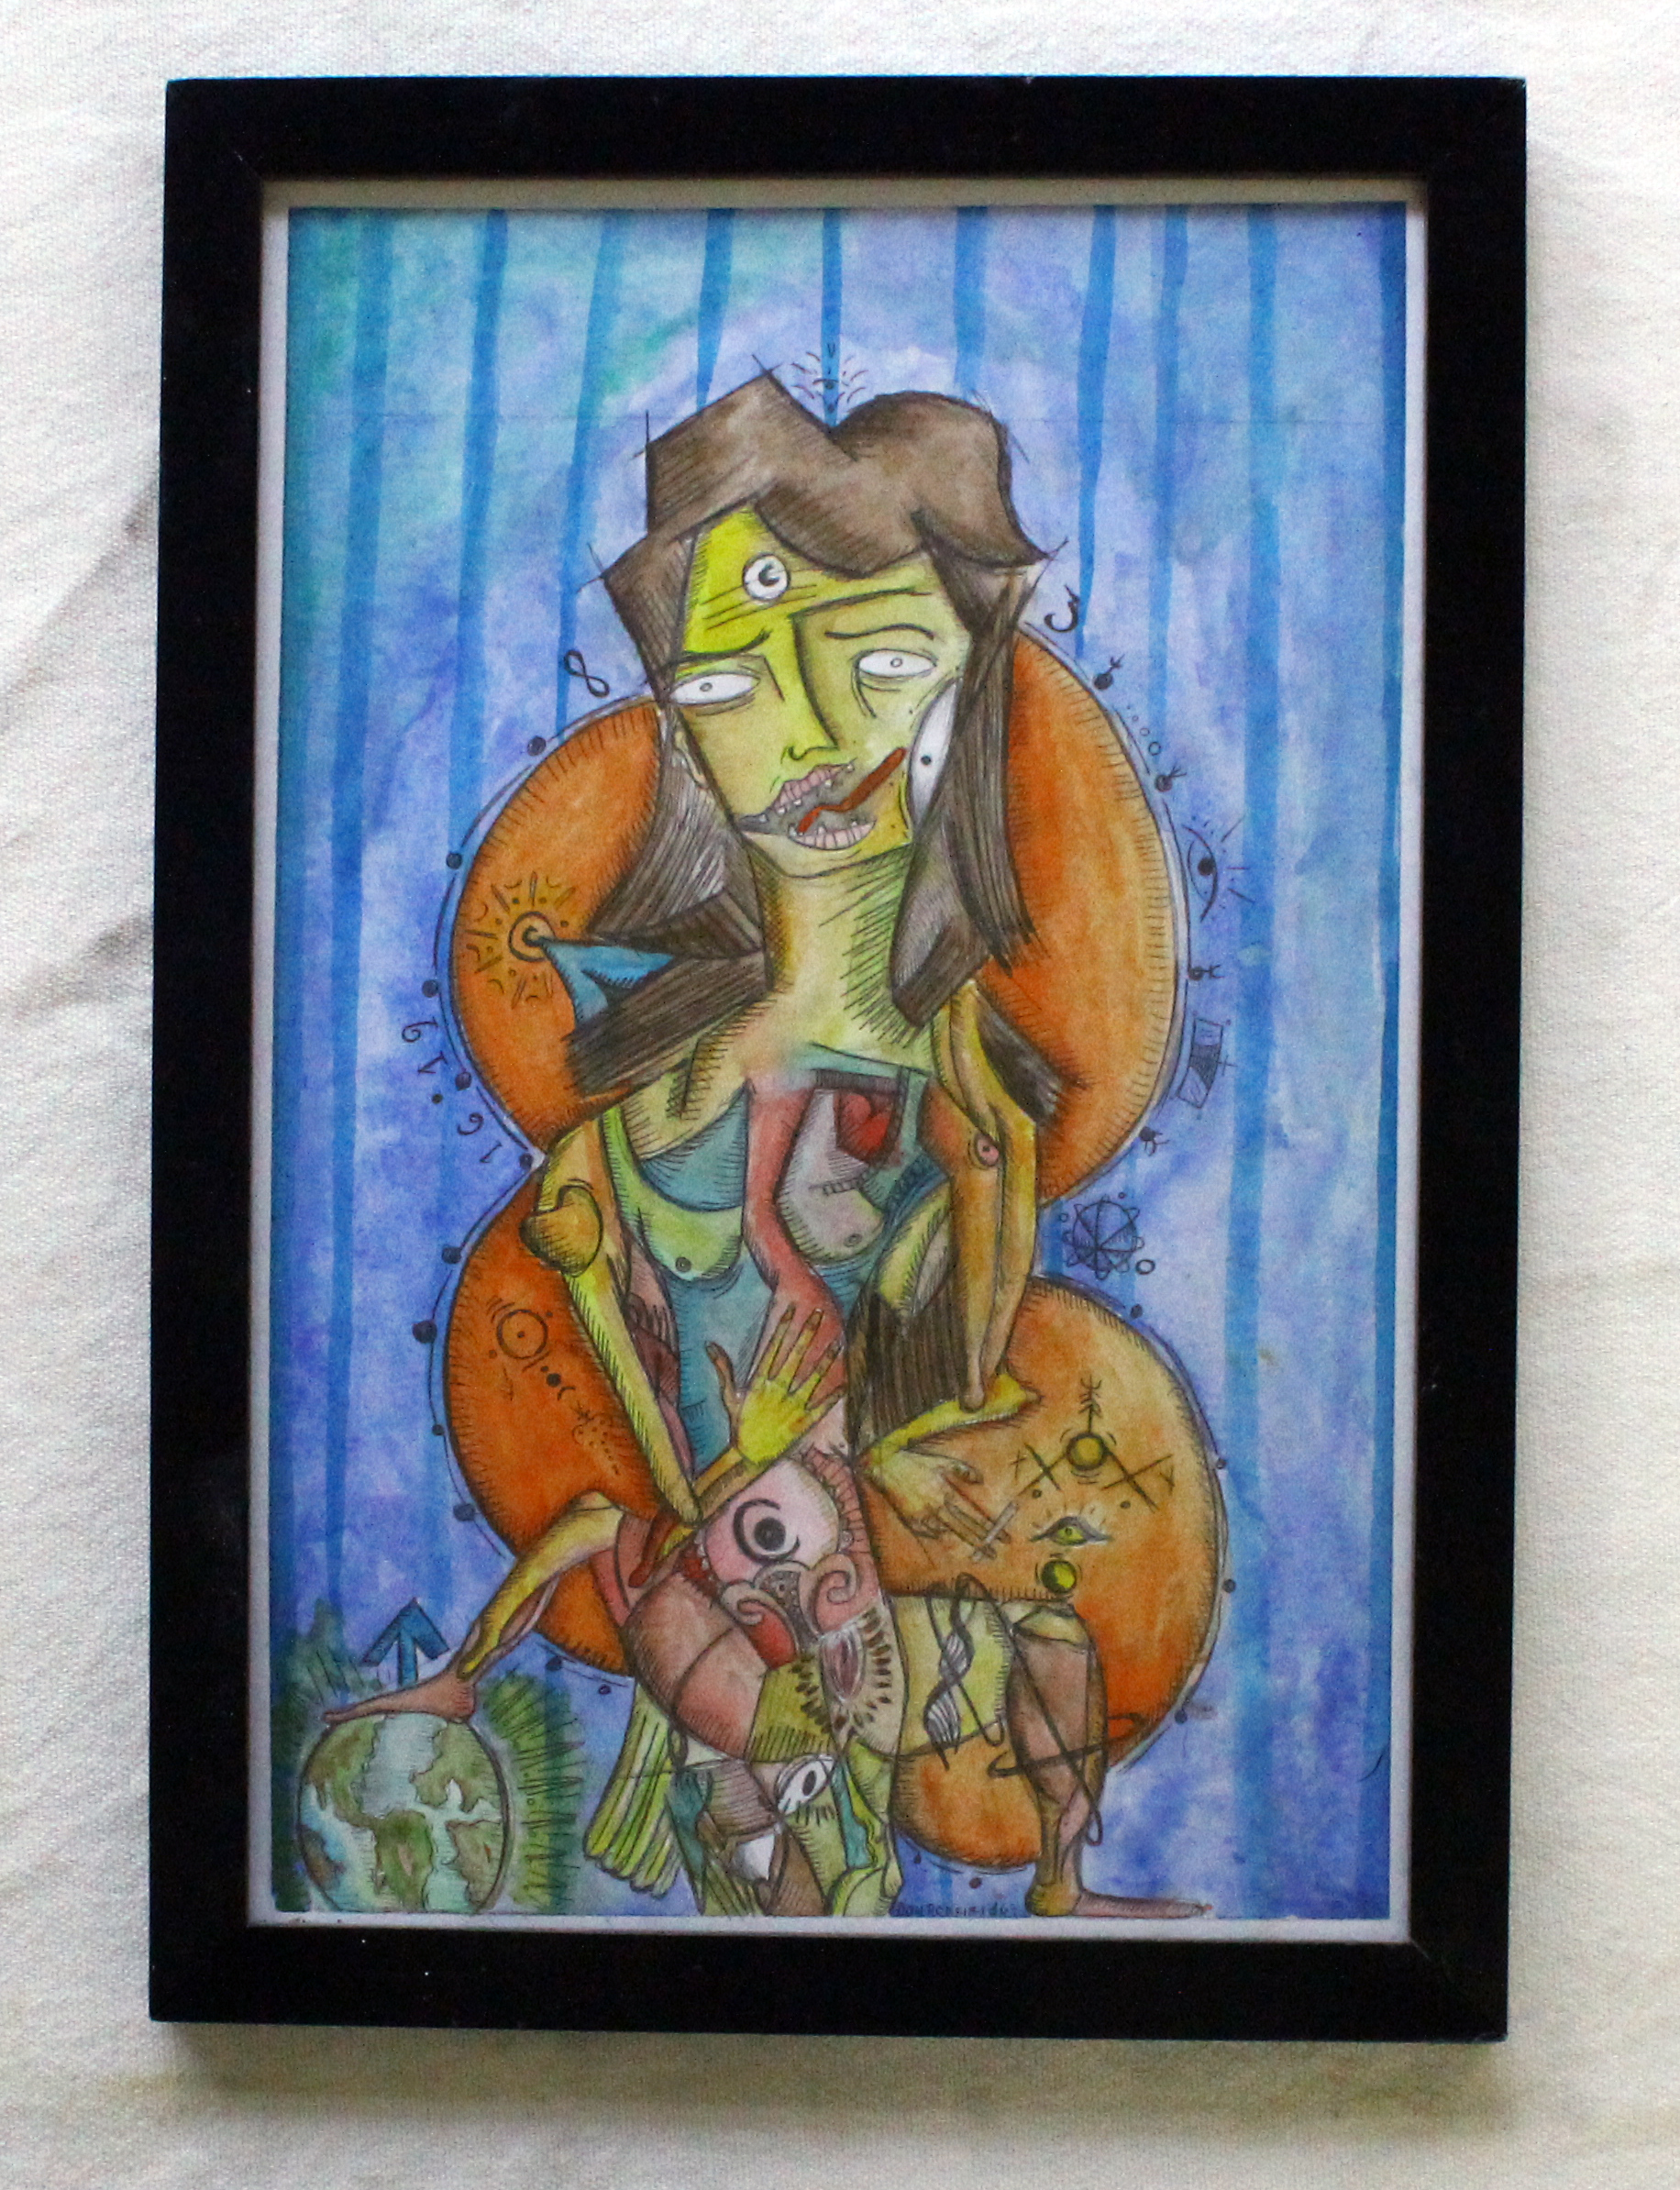 Like X to Y artwork by Diego Don Porfirio - art listed for sale on Artplode